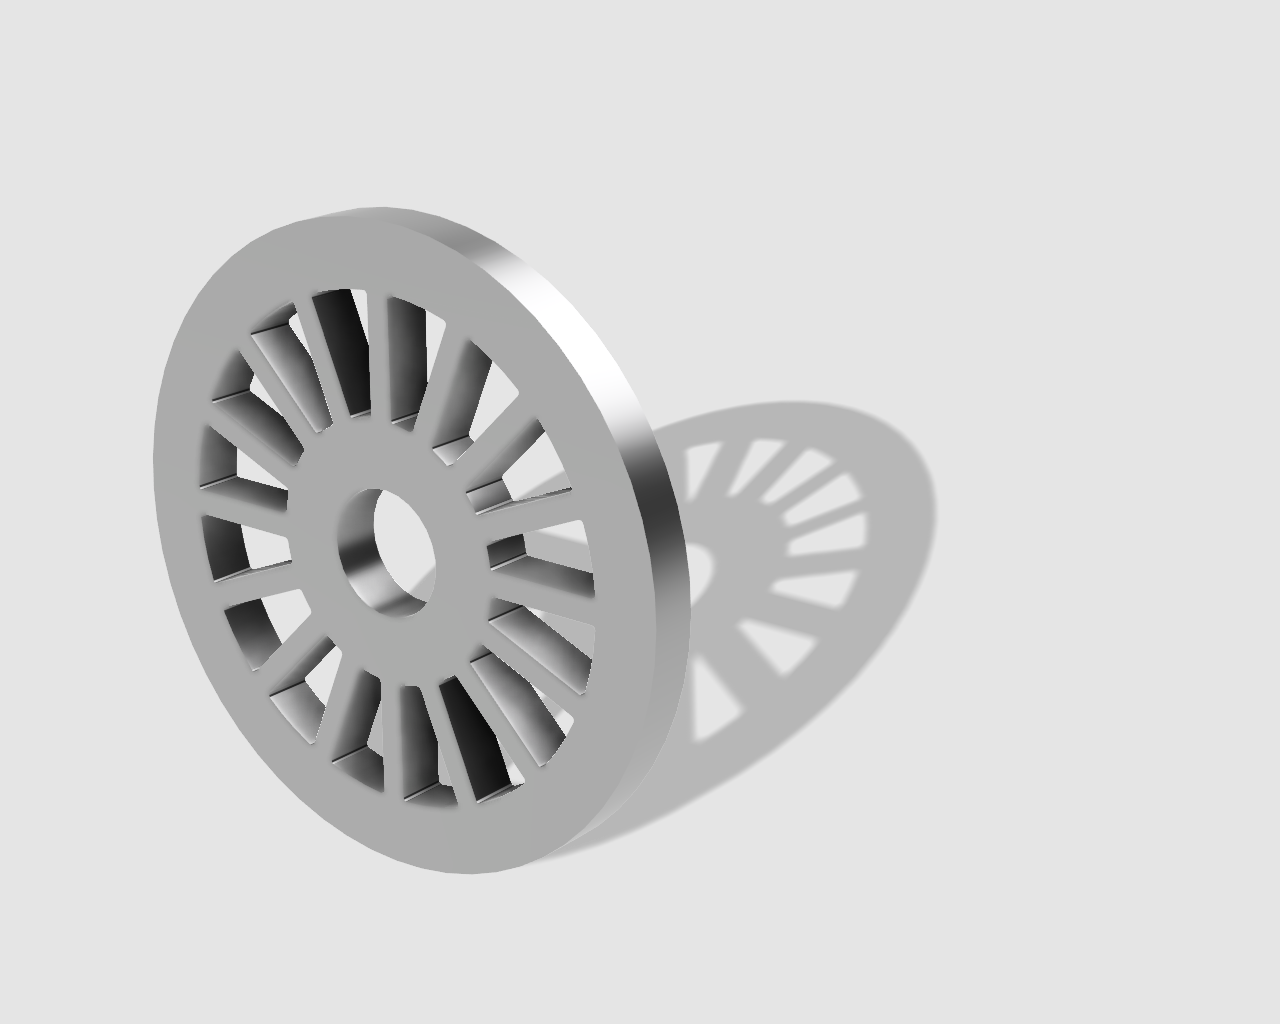 45rpm adaptor - wheel